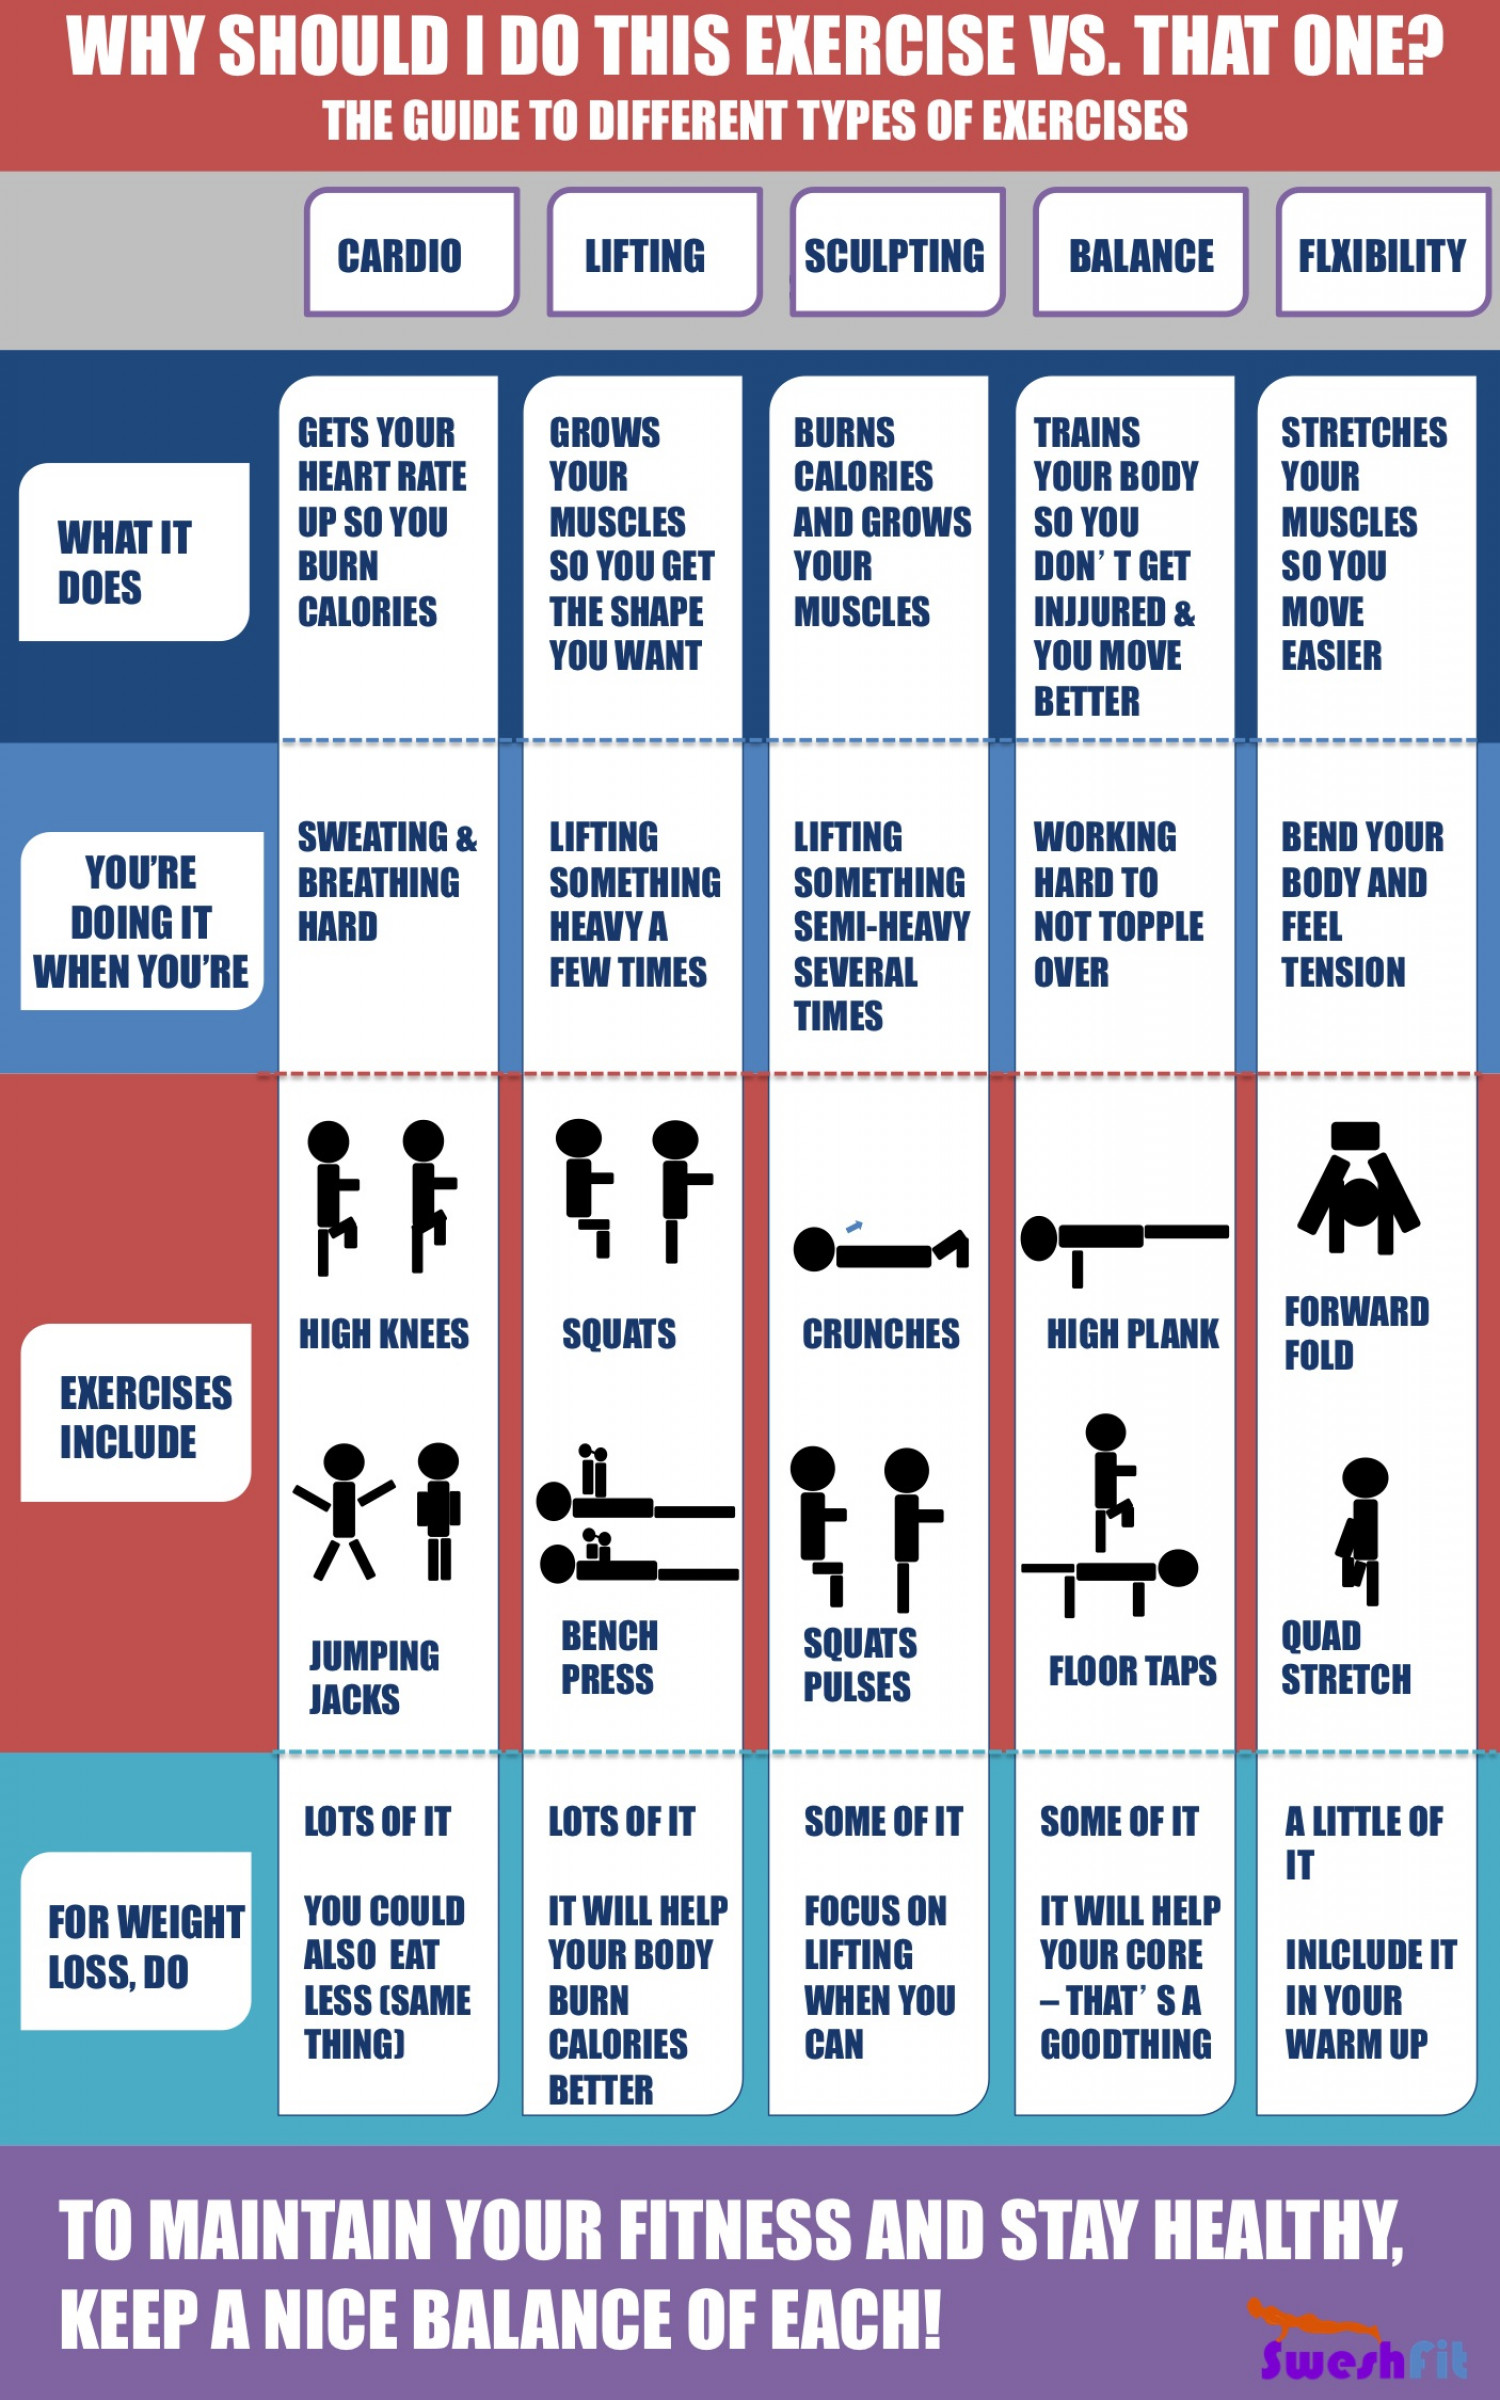 Why Should I Do This Exercise vs. That One? Infographic